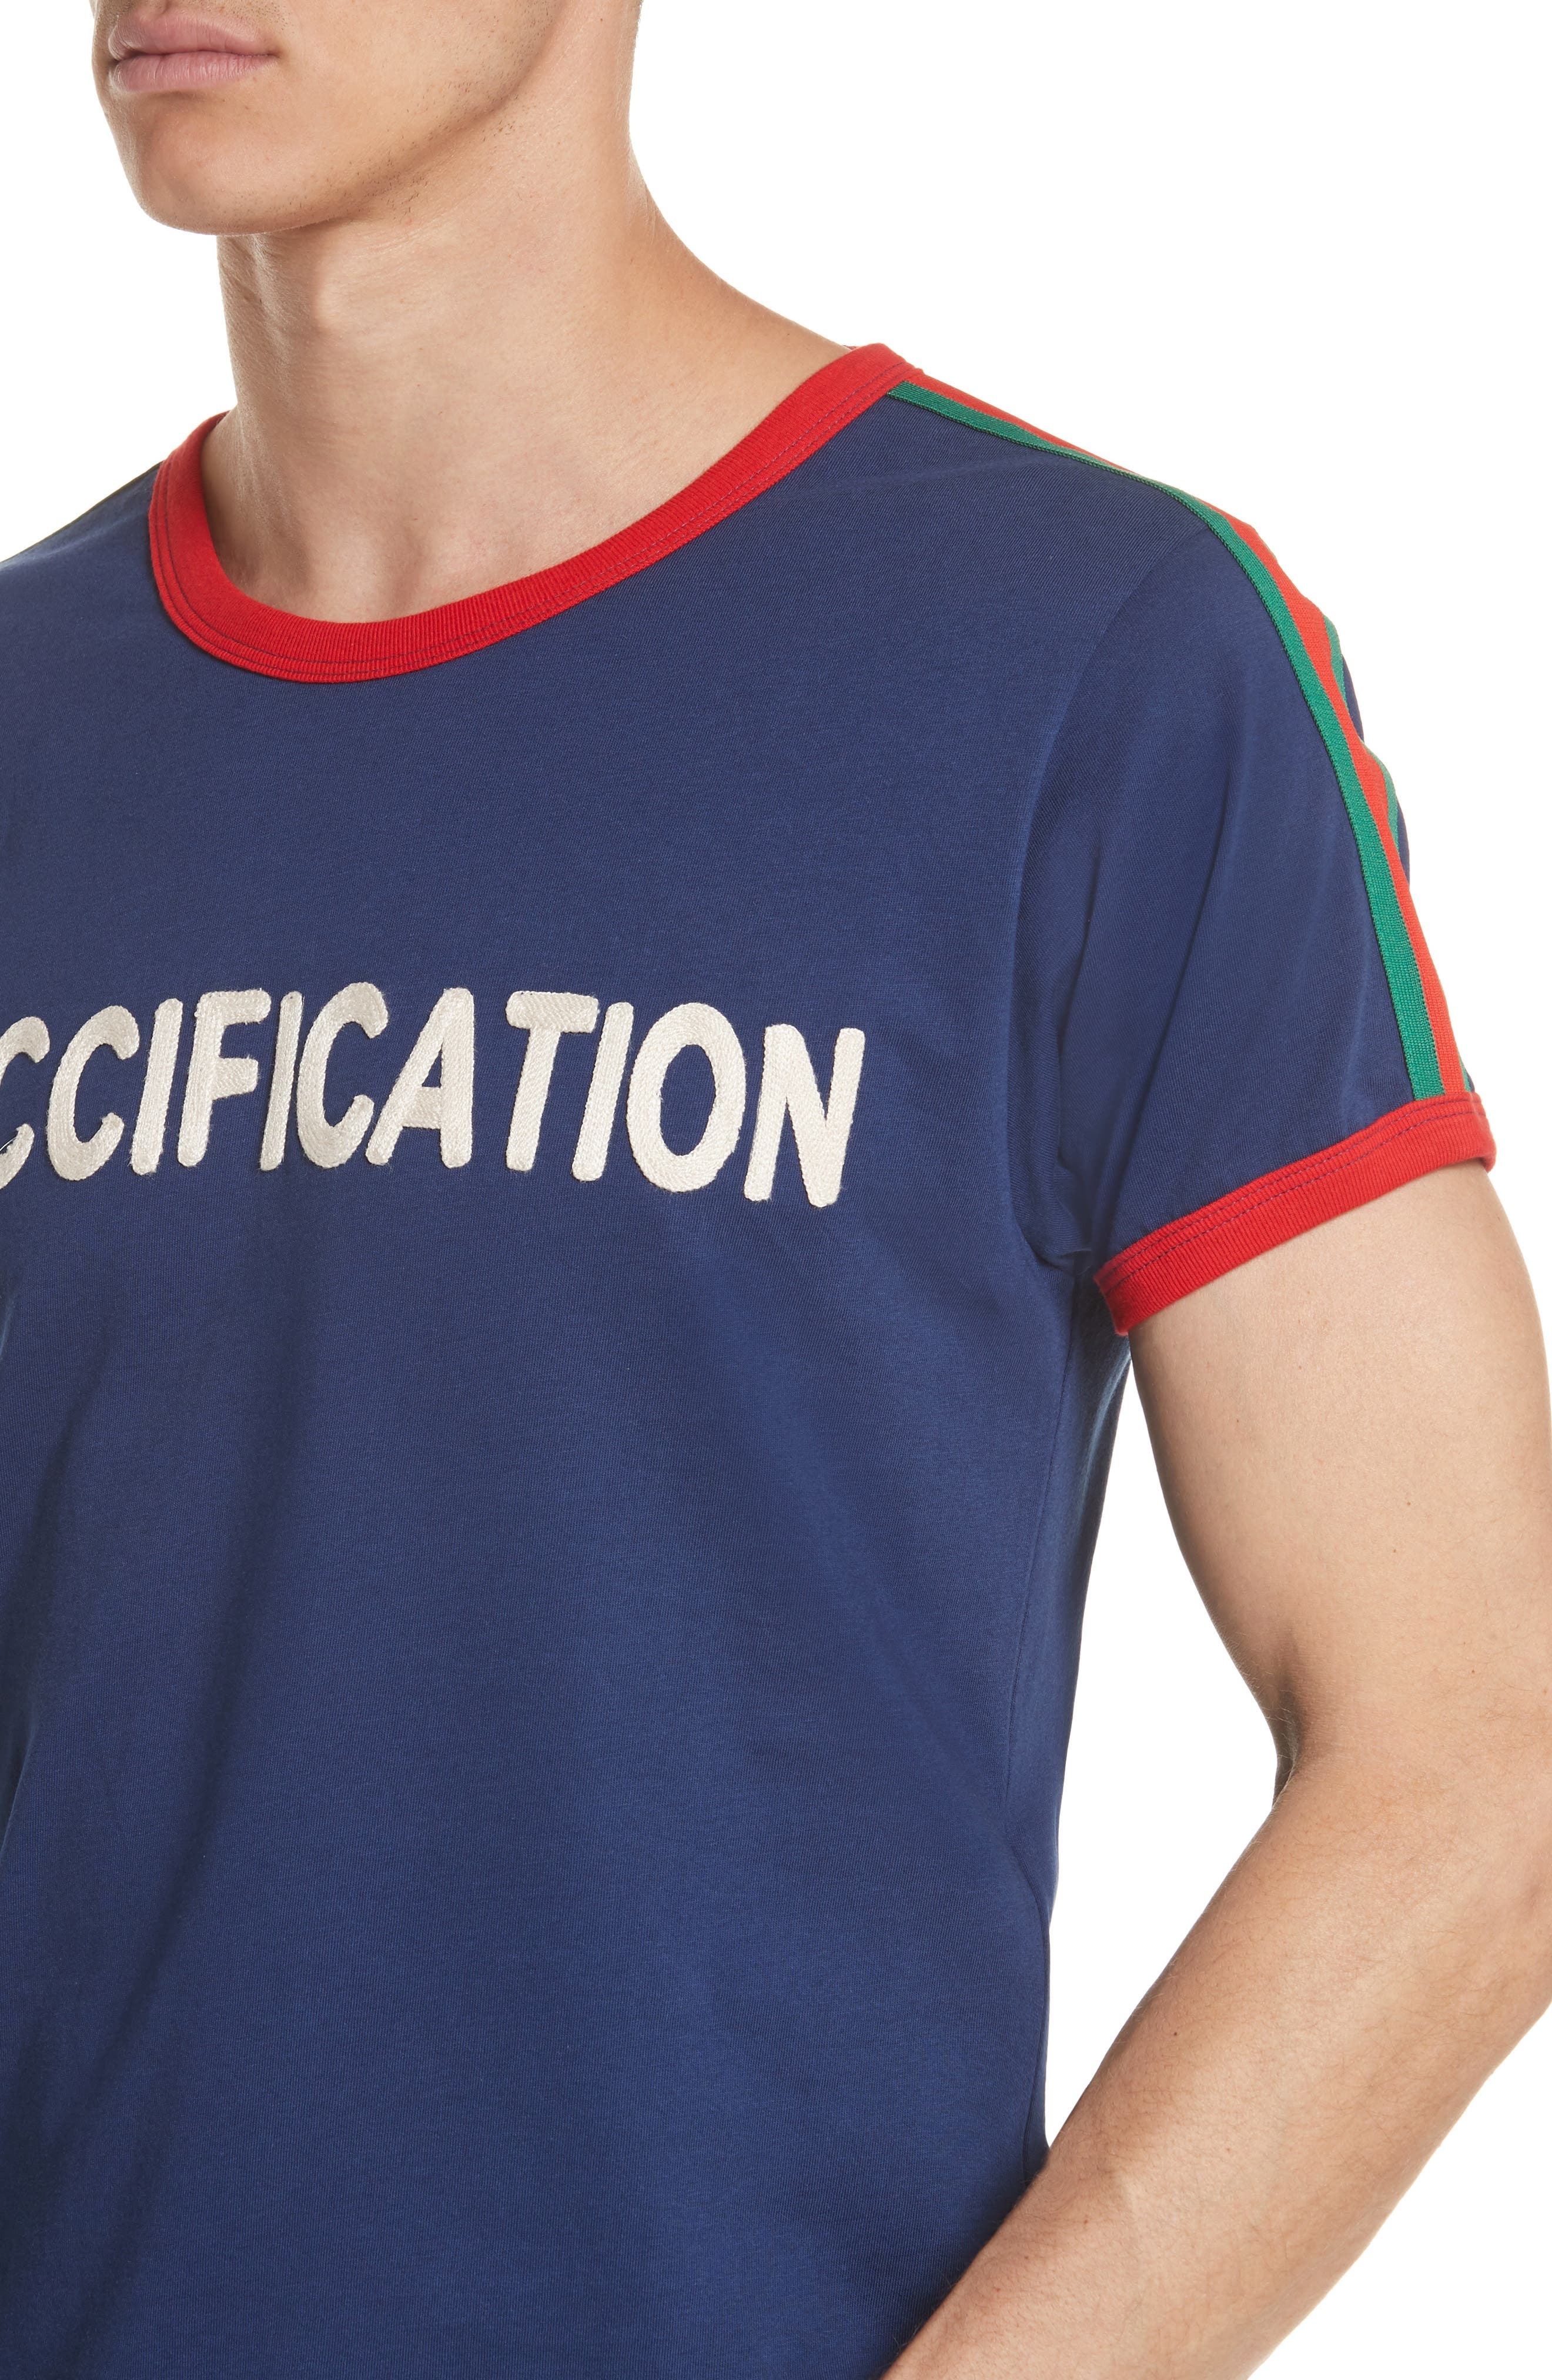 Guccification T-Shirt,                             Alternate thumbnail 4, color,                             968